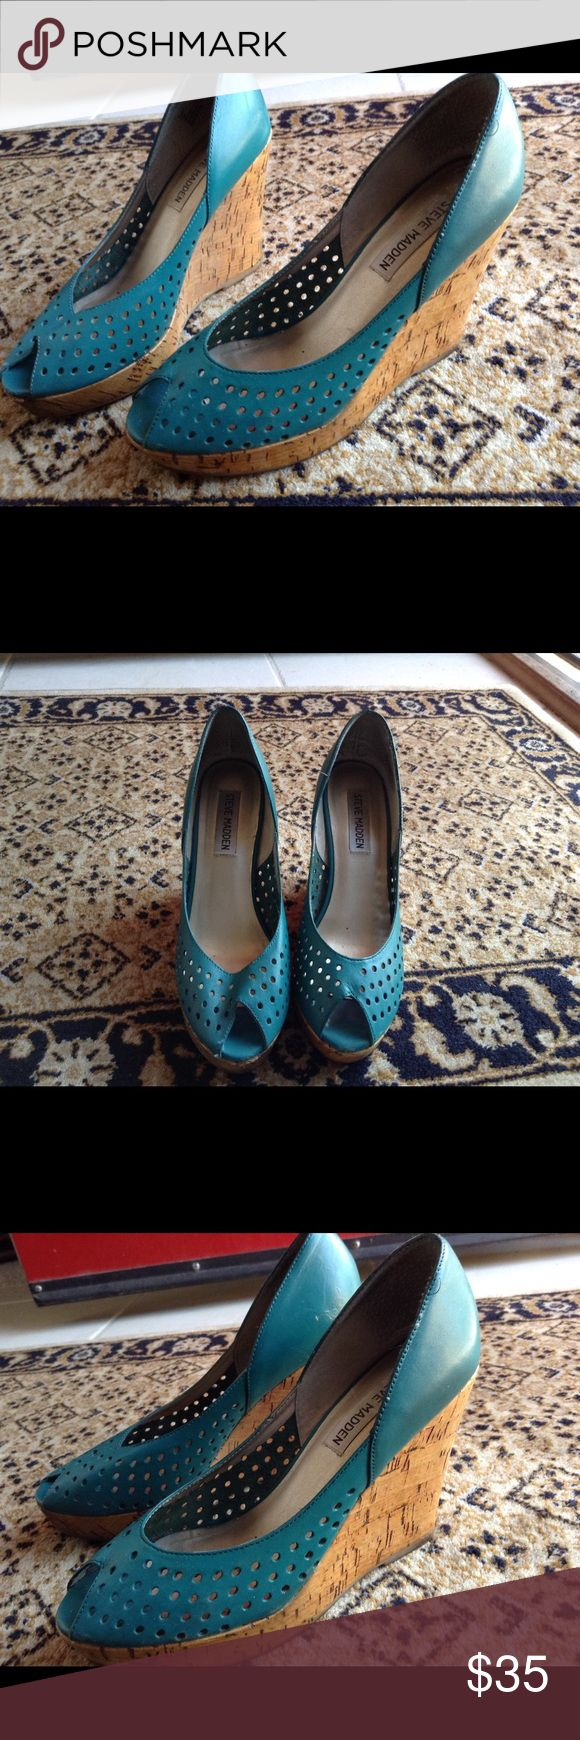 Steve Madden turquoise wedge Turquoise wedge by Steve Madden, excellent condition Steve Madden Shoes Wedges